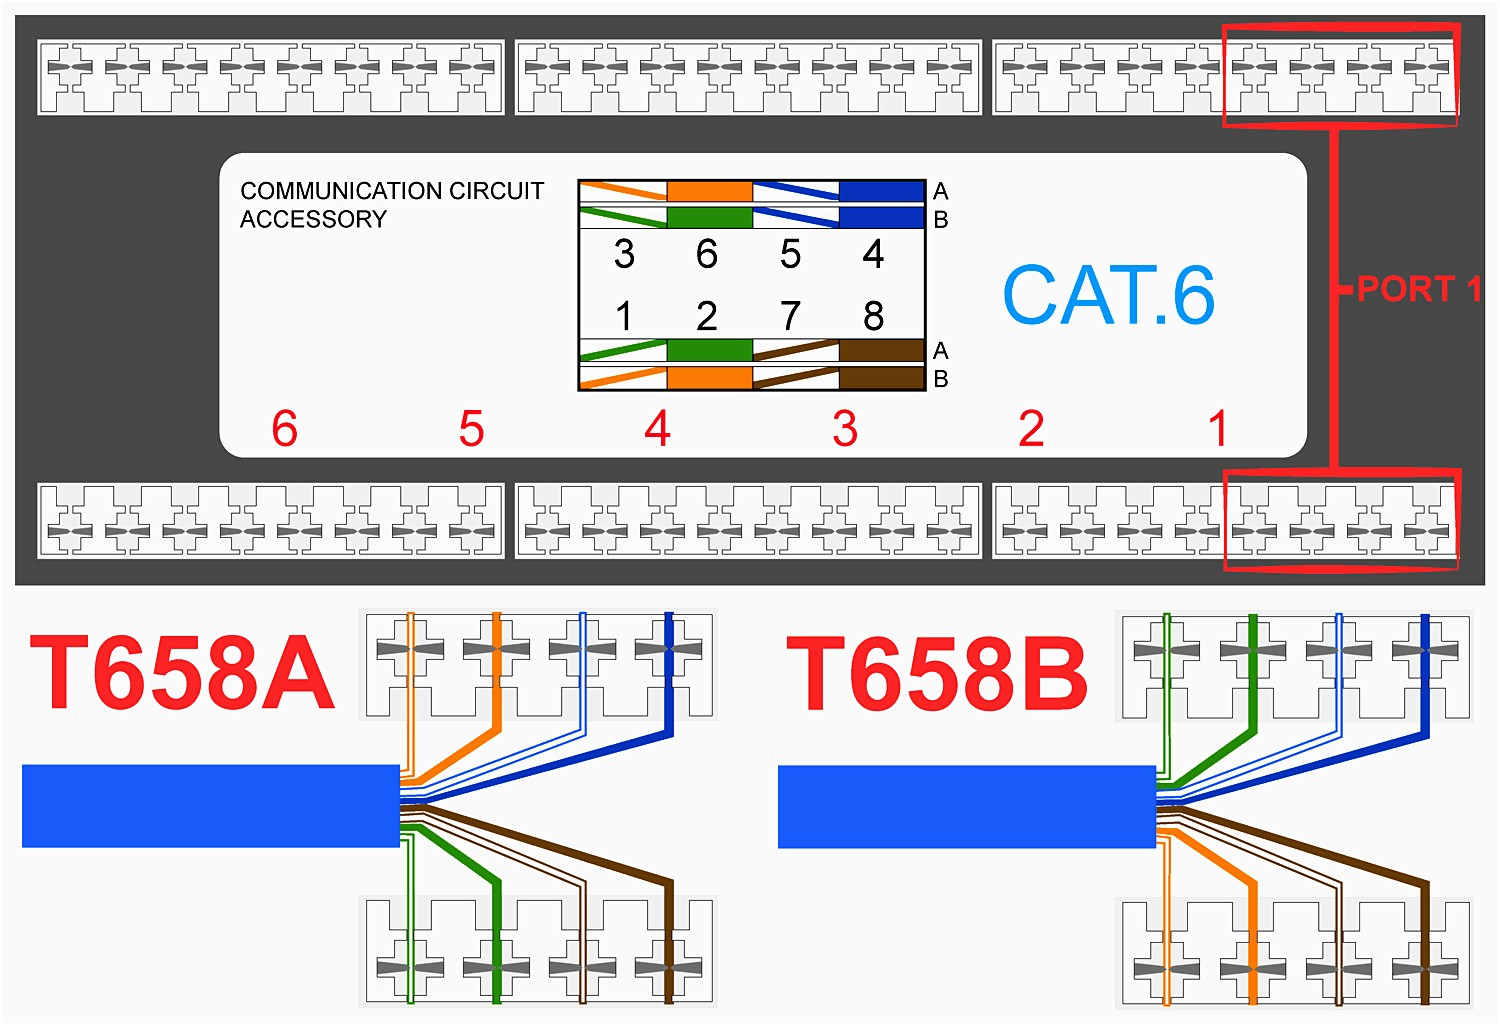 Cat 6 rj45 plug wiring wiring diagram cat 6 wiring diagram rca wiring diagram library u2022 rh wiringboxa today cat 6 rj45 ends cat6a connectors asfbconference2016 Image collections